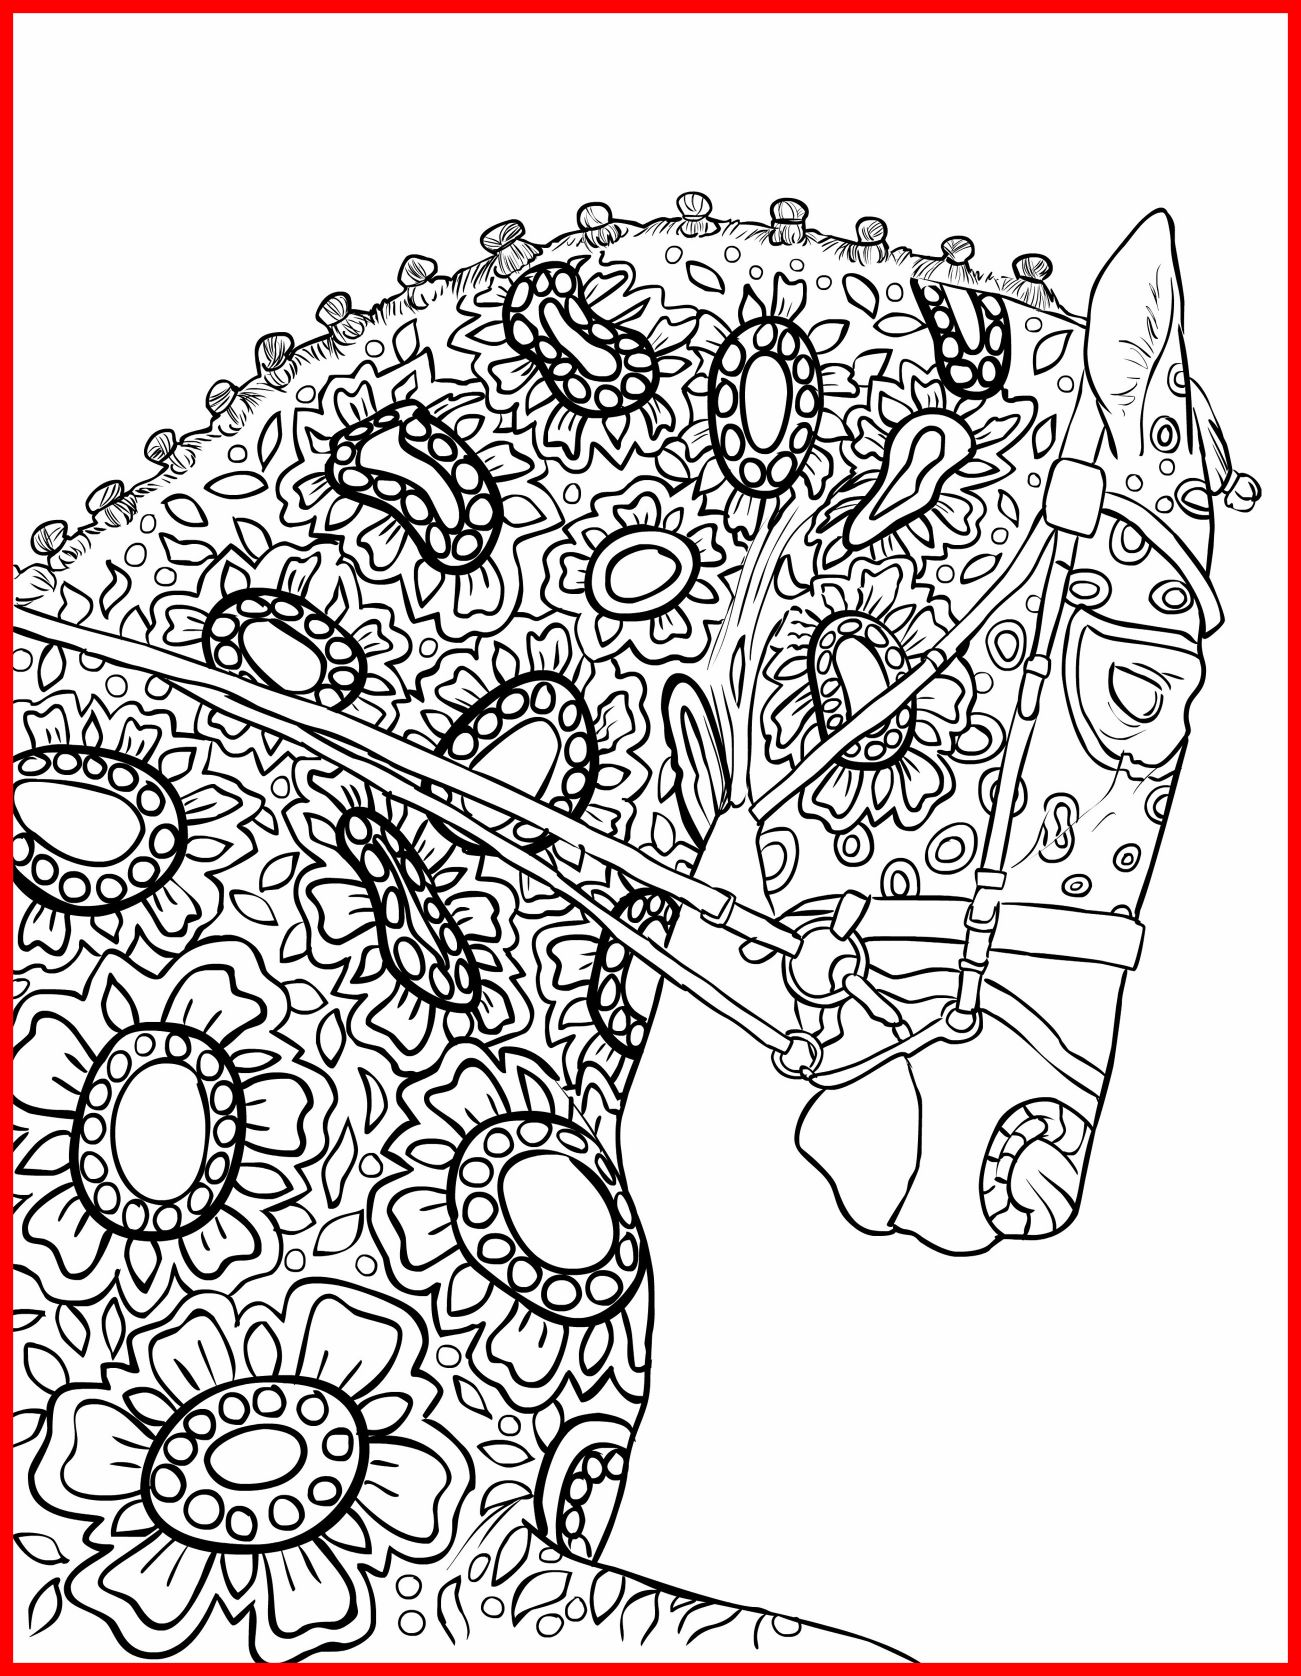 1301x1676 Wild Pig Coloring Pages